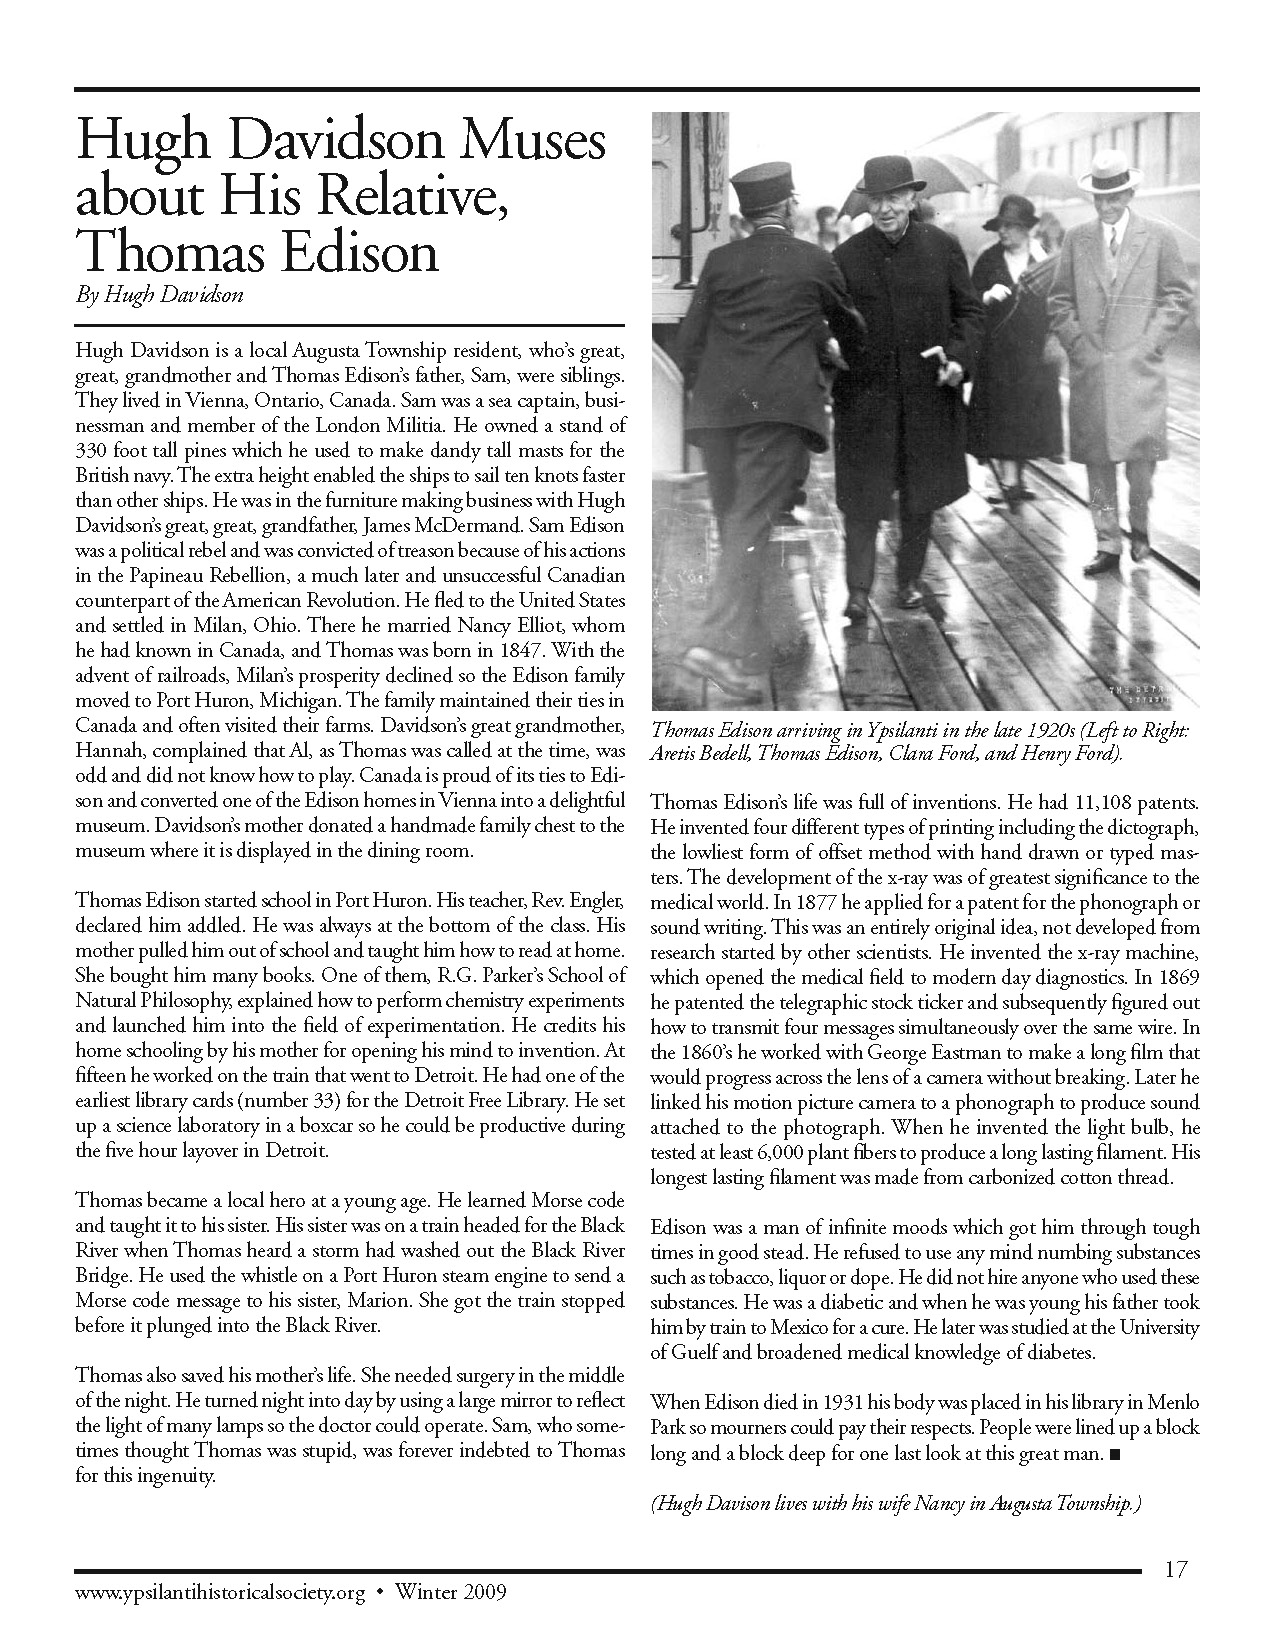 Hugh Davidson Muses about his Relative, Thomas Edison image